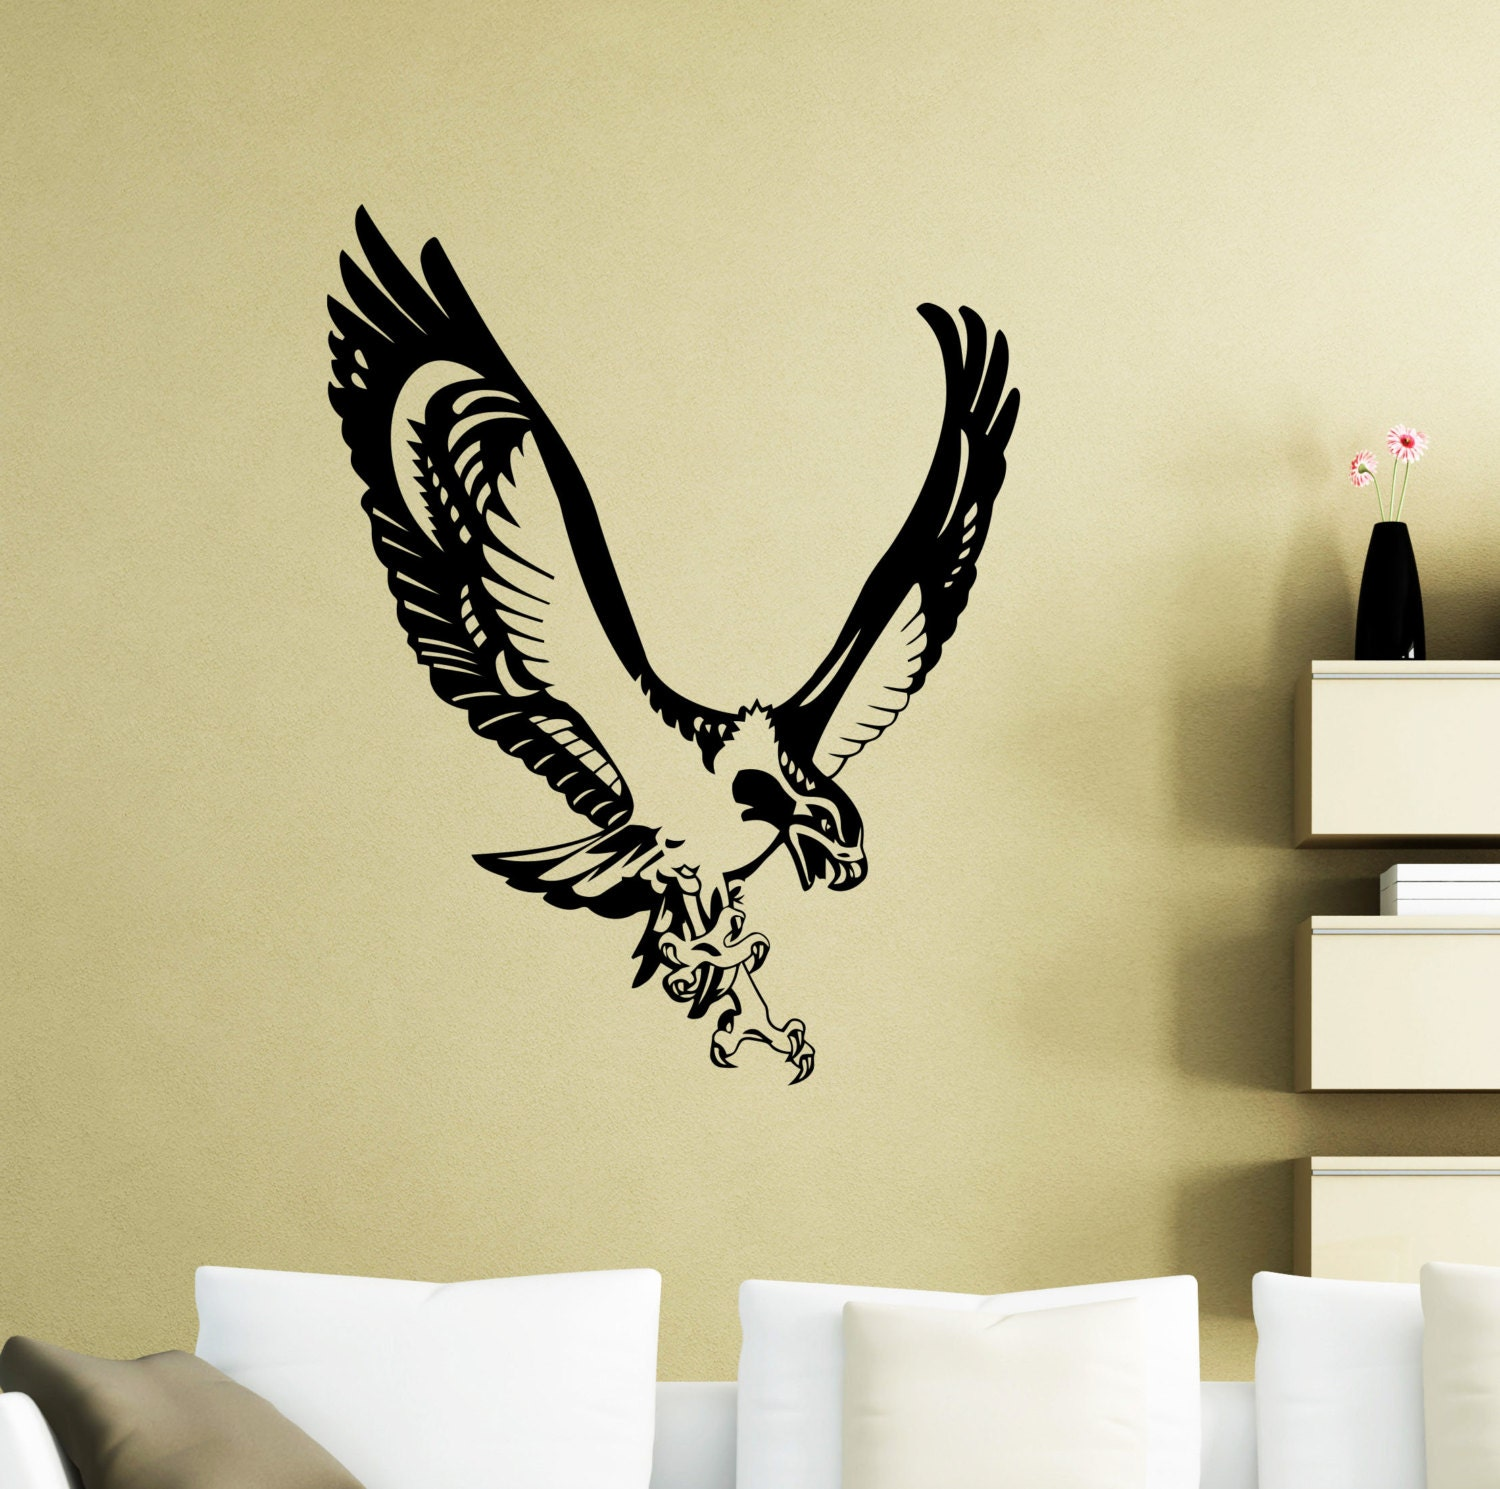 Seahawk Wall Sticker Sea Hawk Fish Eagle Osprey Bird Animals